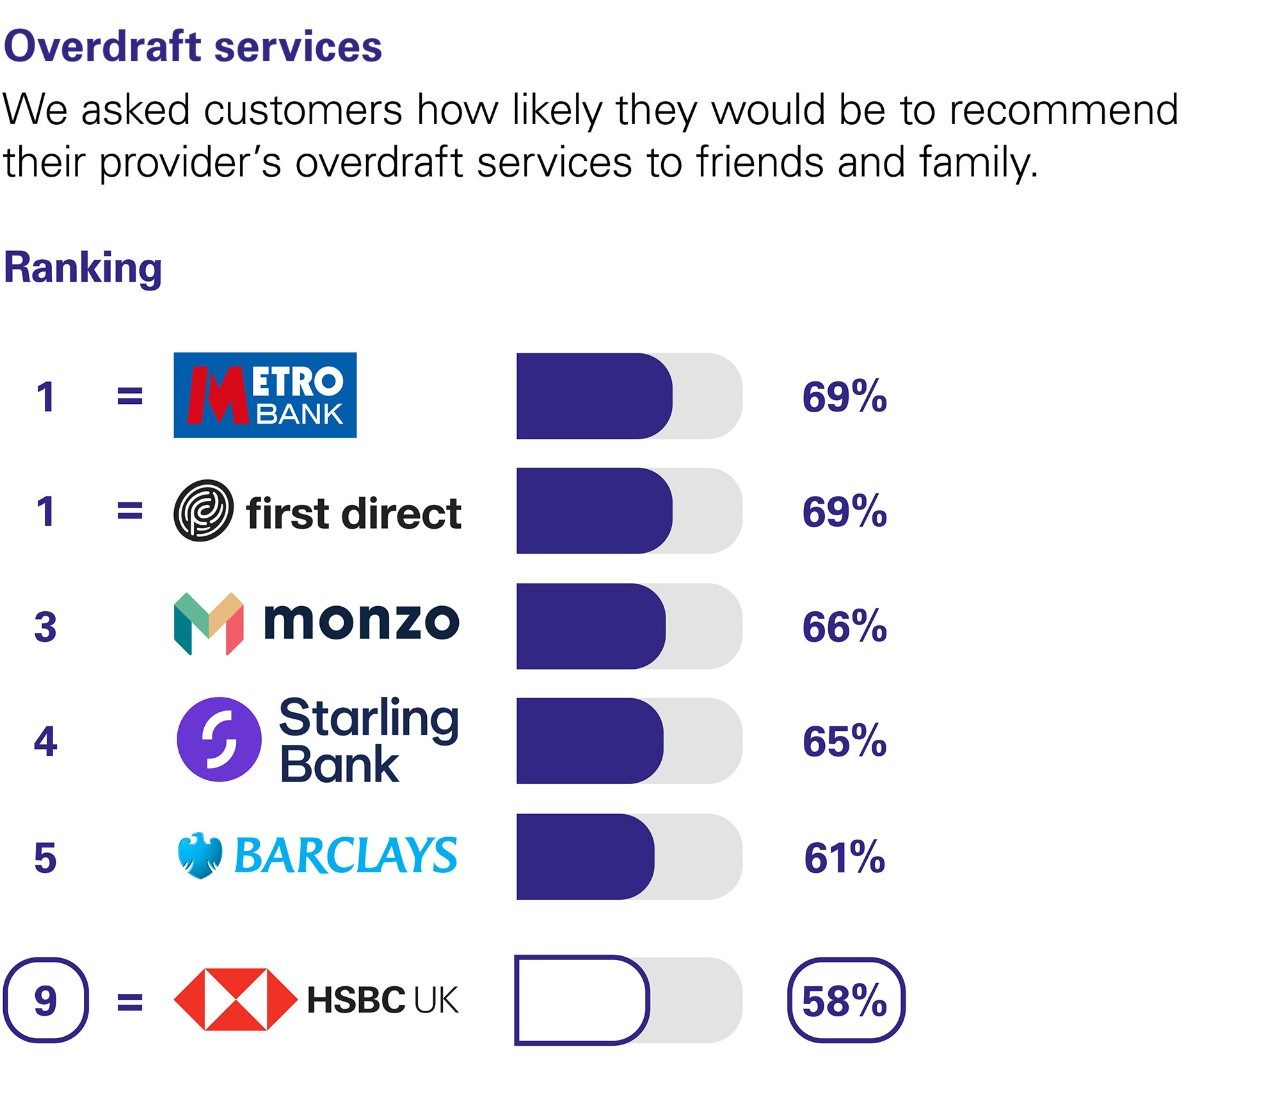 Overdraft services. We asked customers how likely they would be to recommend their provider's overdraft services to friends and family. Ranking: equal 1st Metro bank  69%. and  first direct 69%. 3 Monzo 66%. 4 Starling Bank 65%. 5 Barclays 61%.  equal 9 HSBC UK 58%.